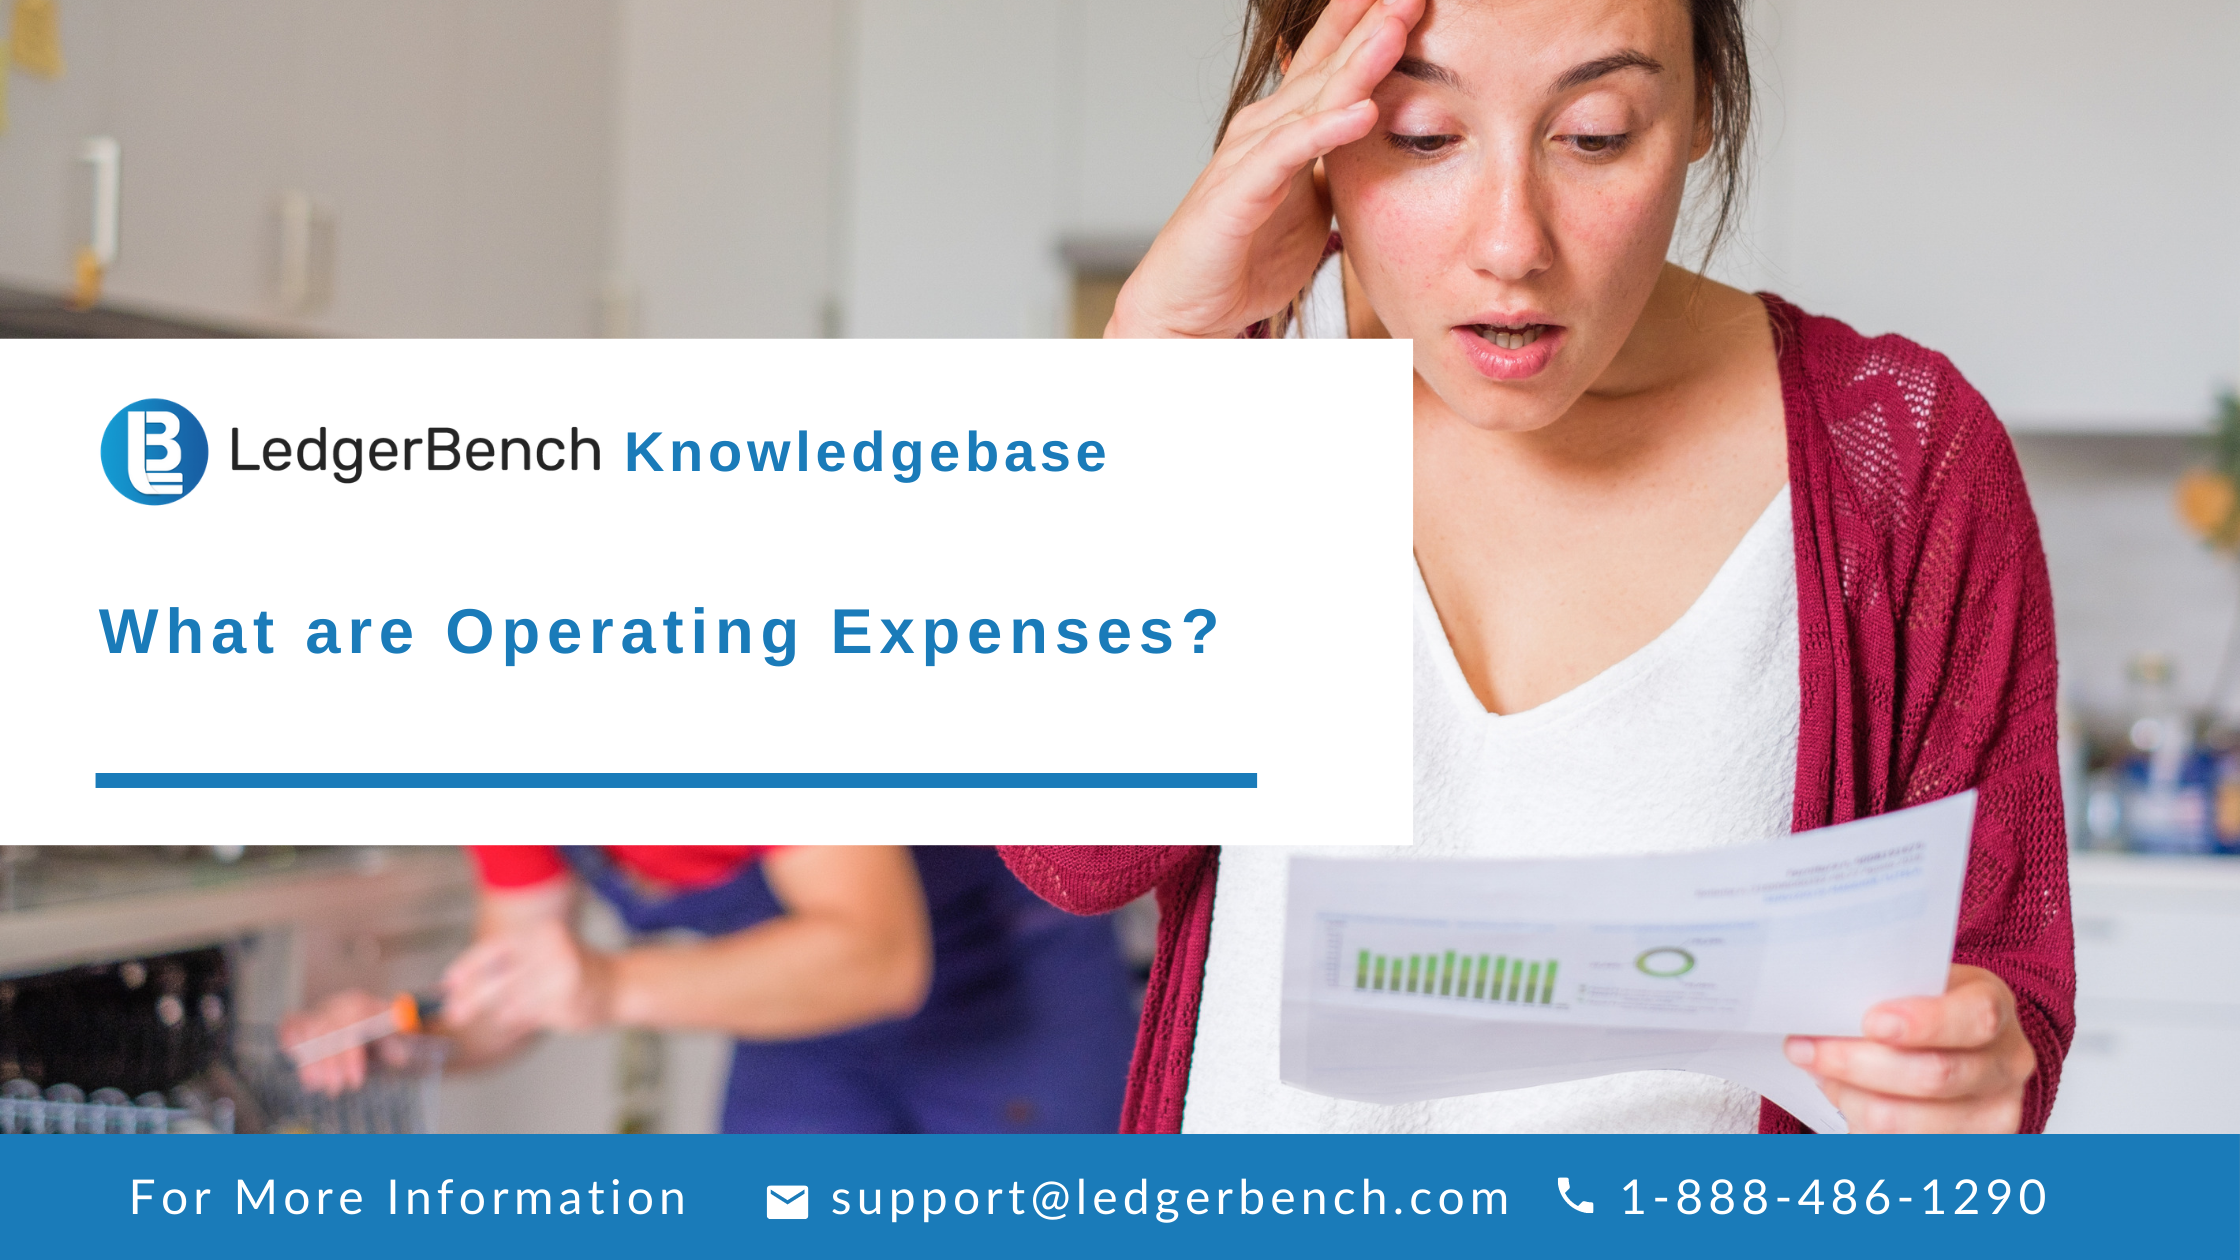 What are Operating Expenses